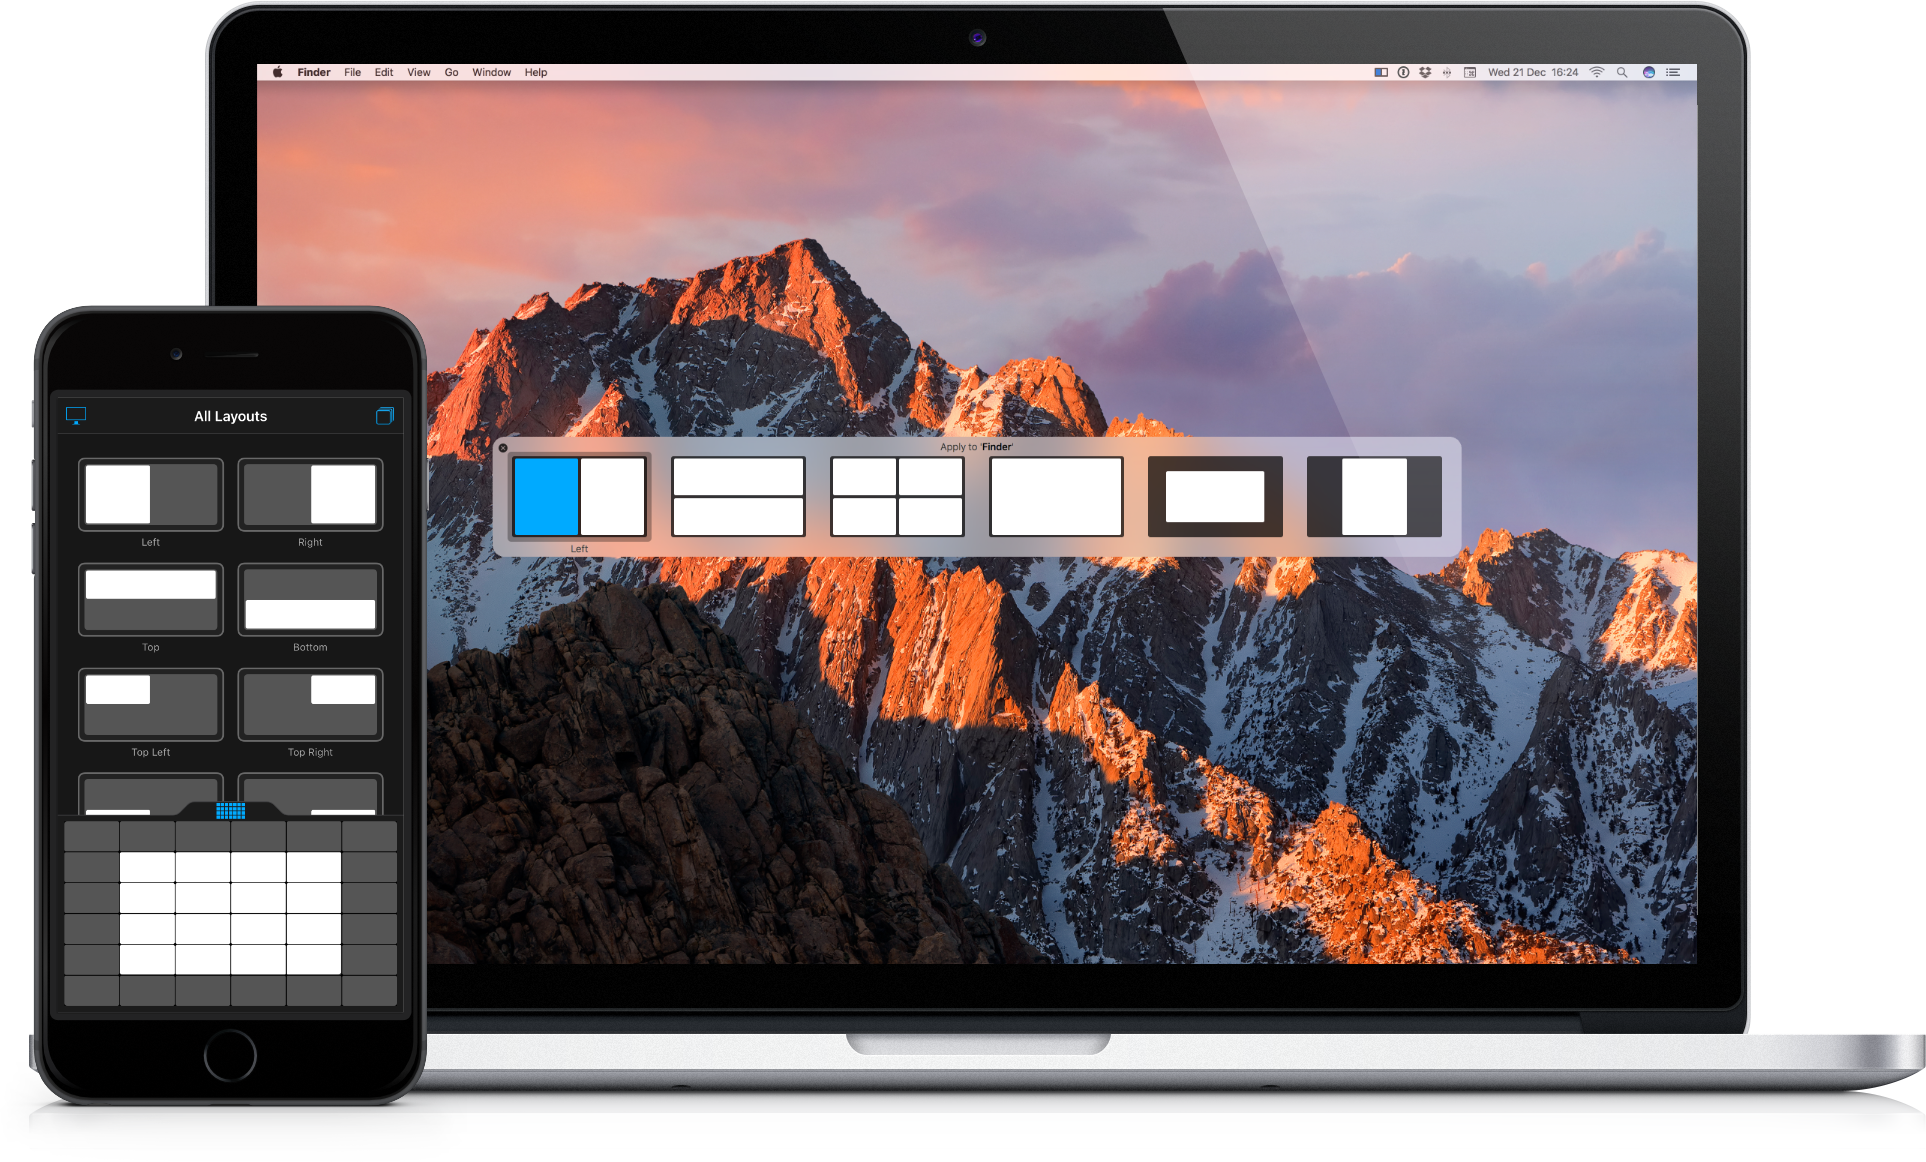 33 Best window manager for Mac as of 2019 - Slant